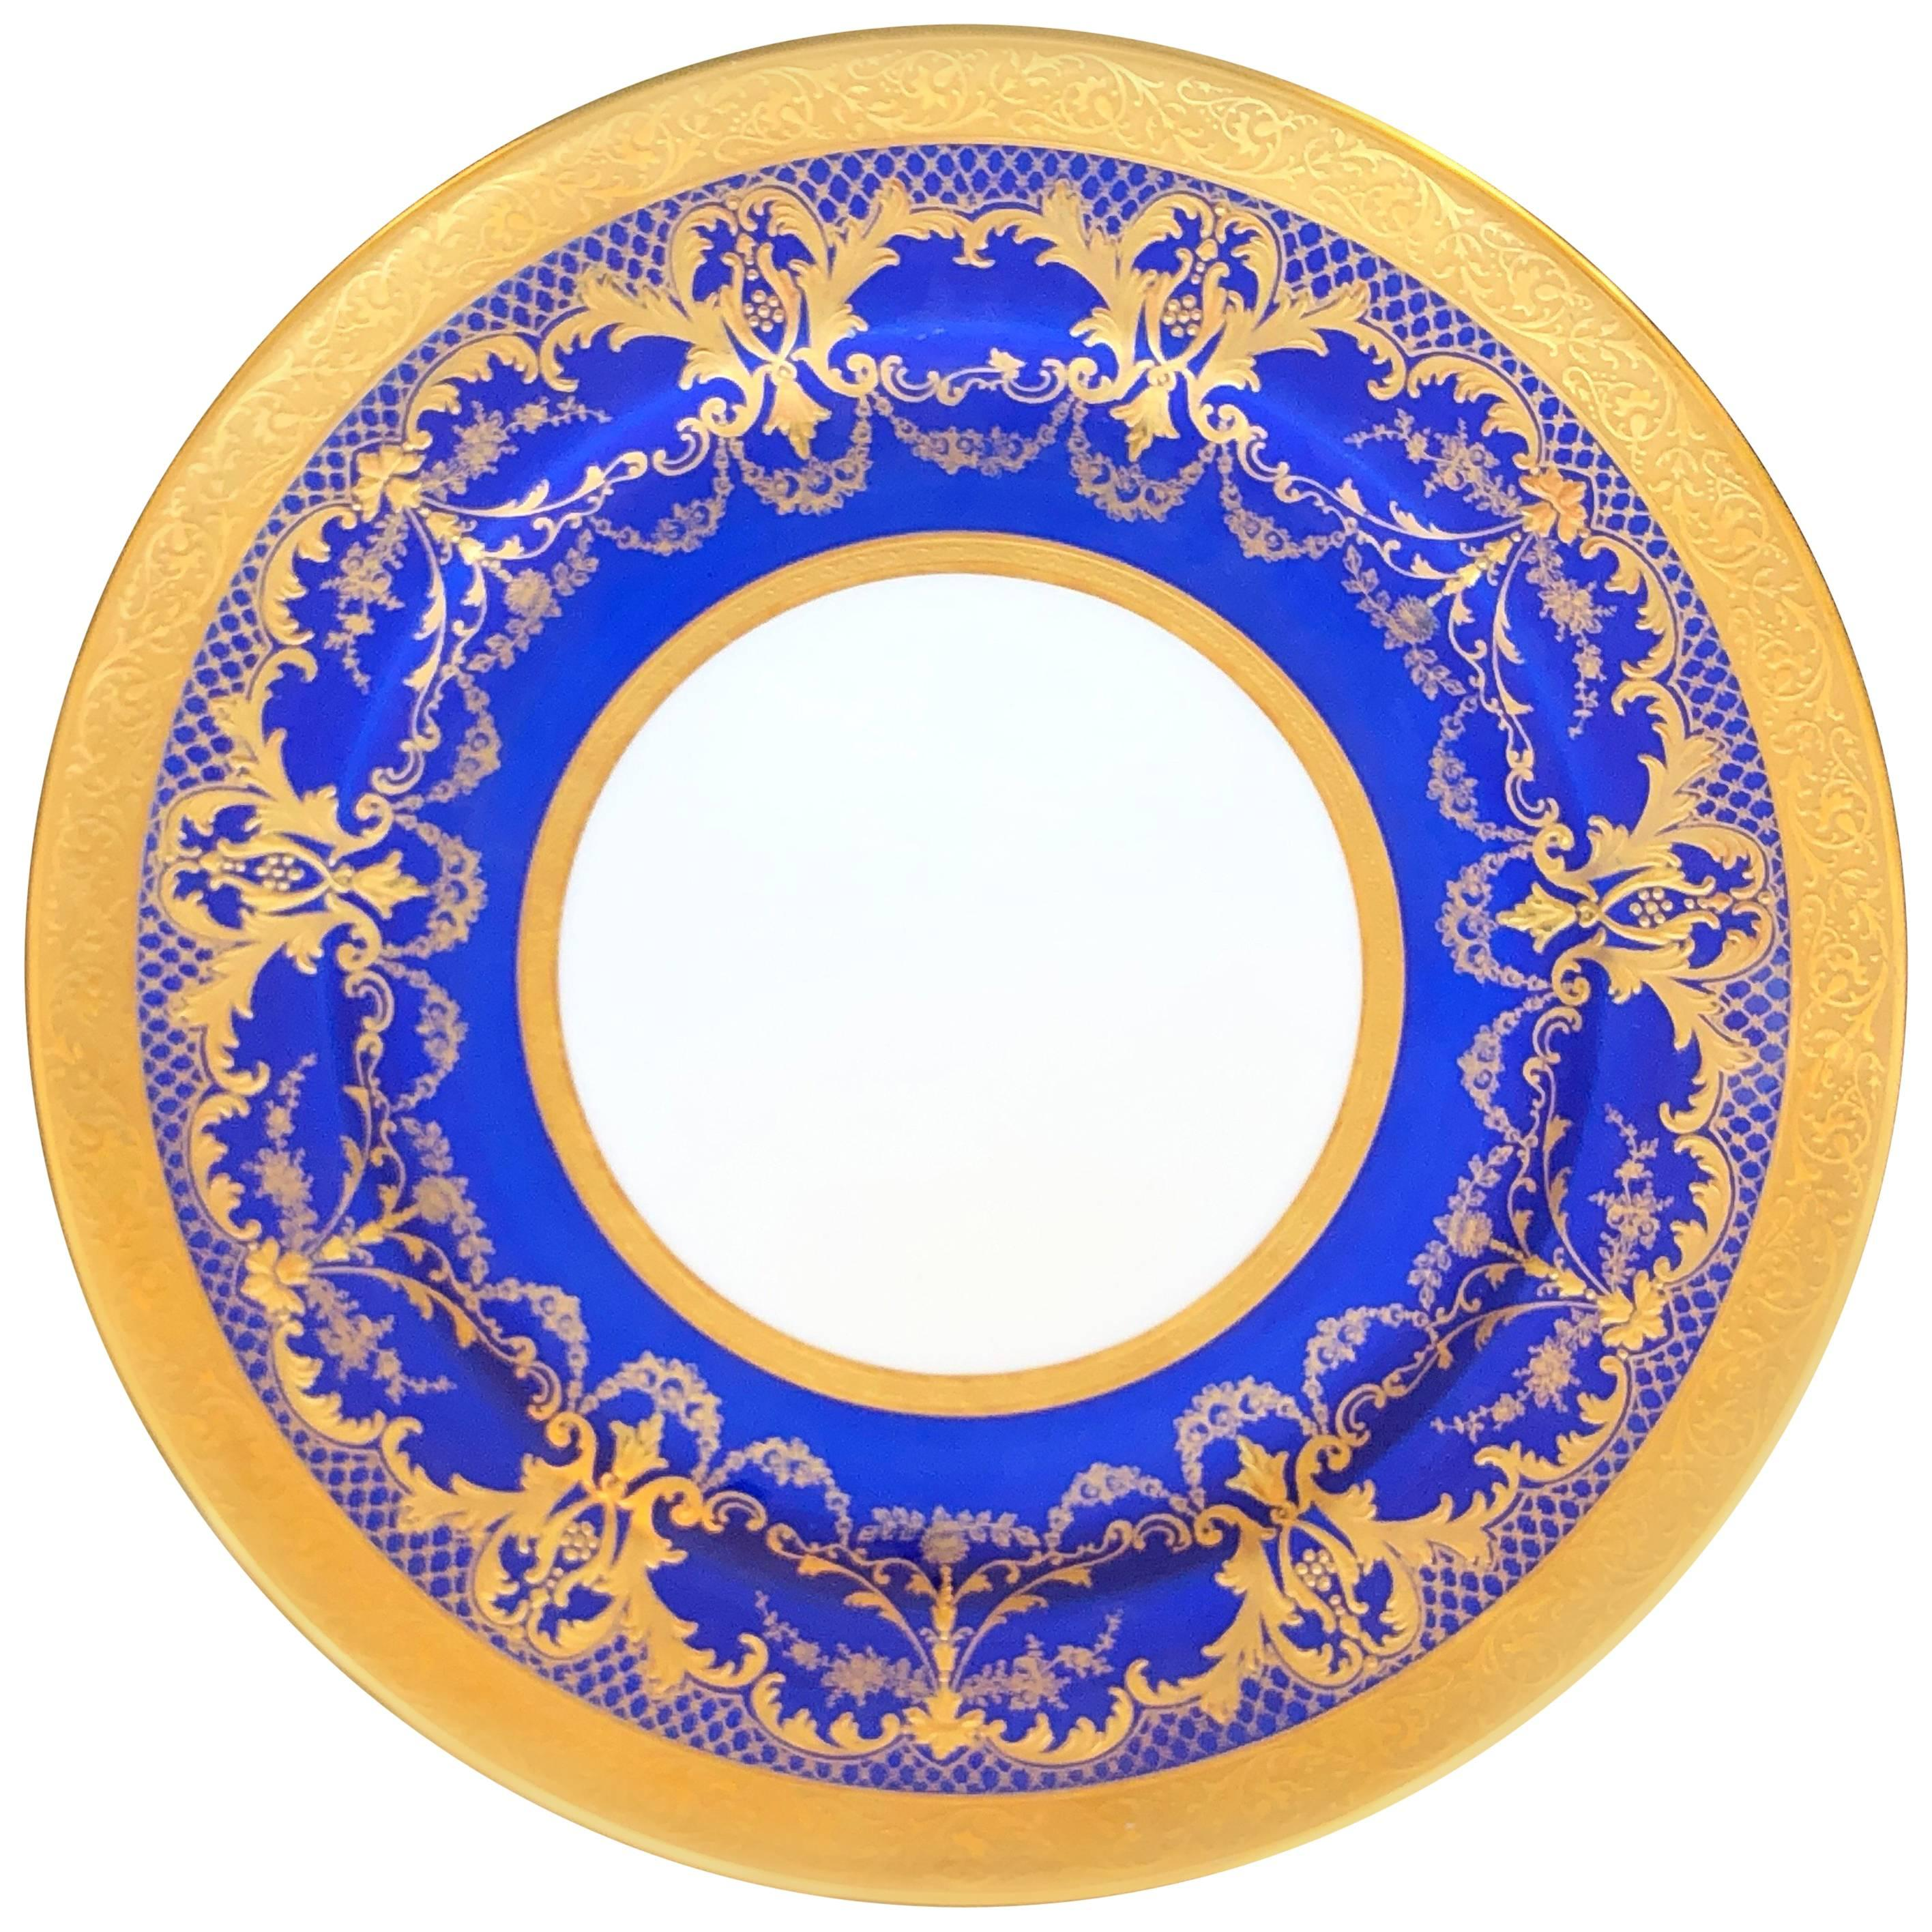 12 Limoges Dinner Plates  sc 1 st  1stDibs & French Dinner Plates - 213 For Sale at 1stdibs